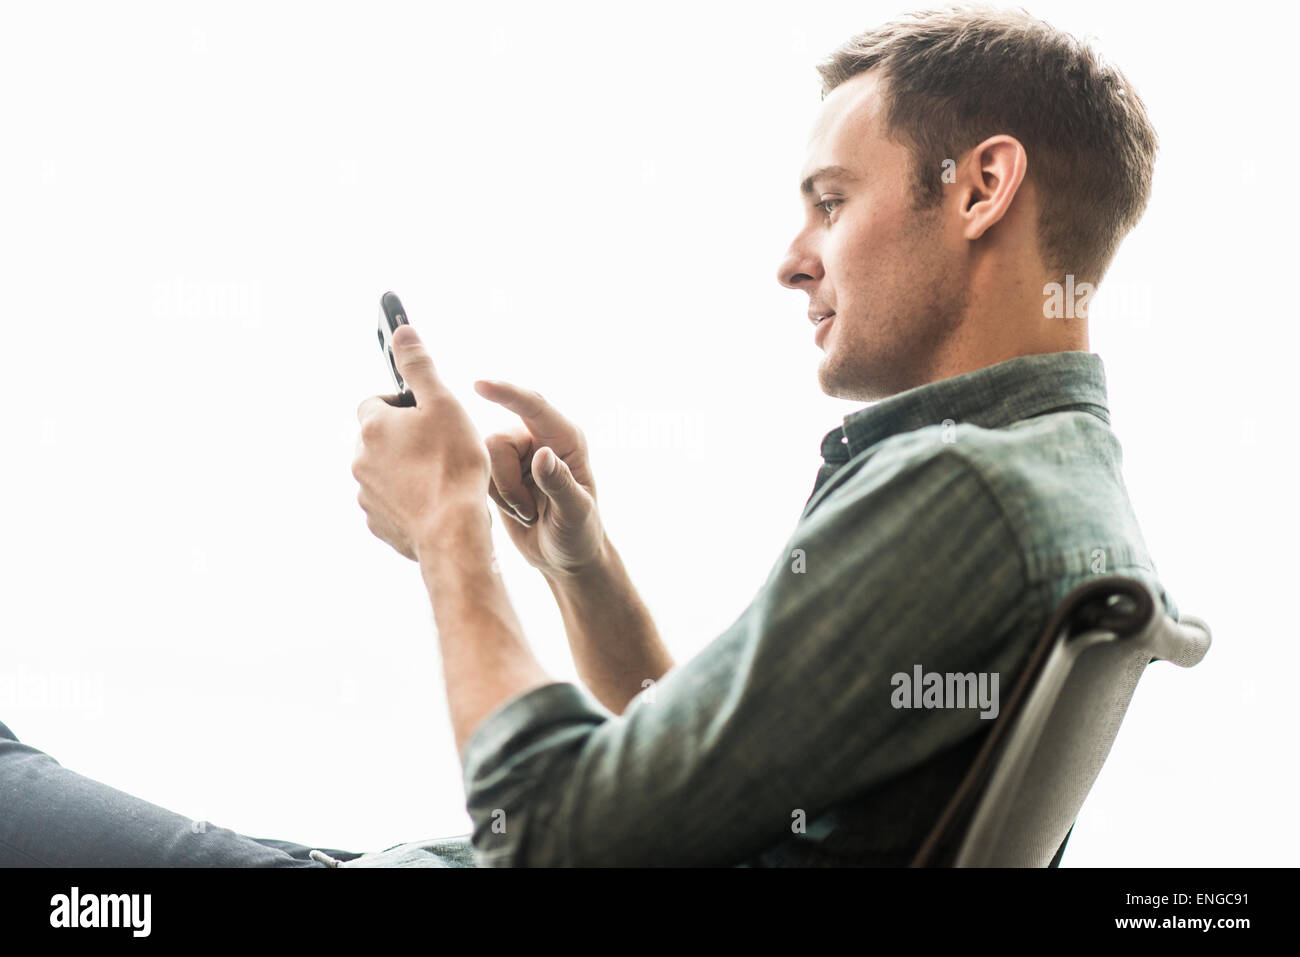 A man sitting checking his phone. - Stock Image